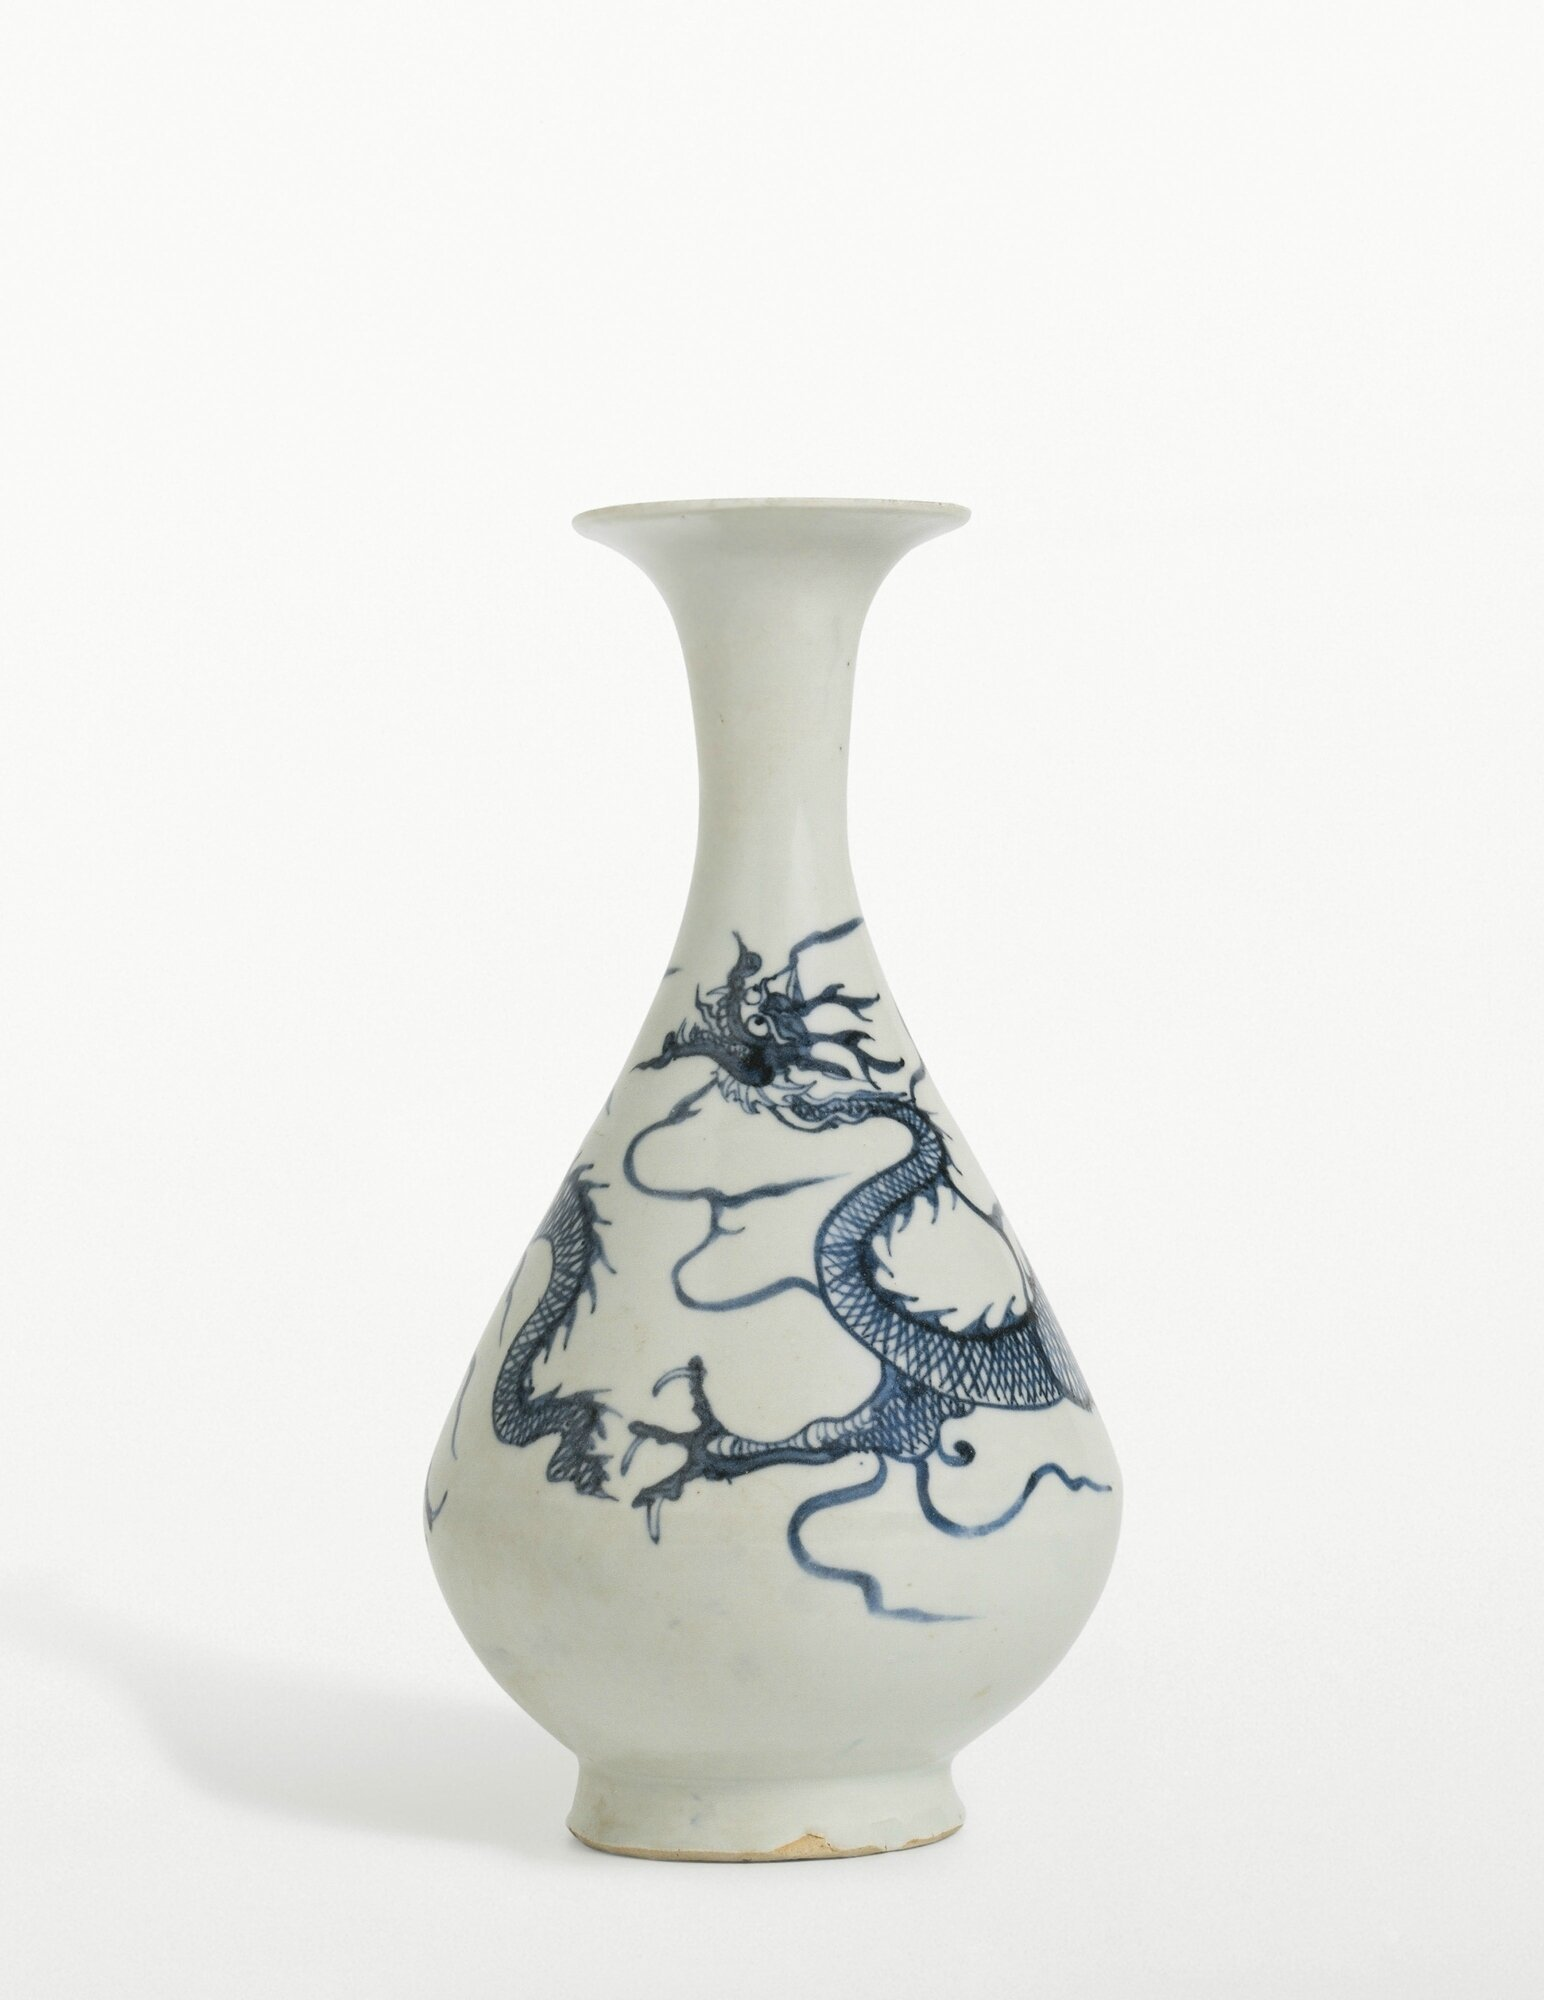 An important Blue and White'Dragon' bottle vase